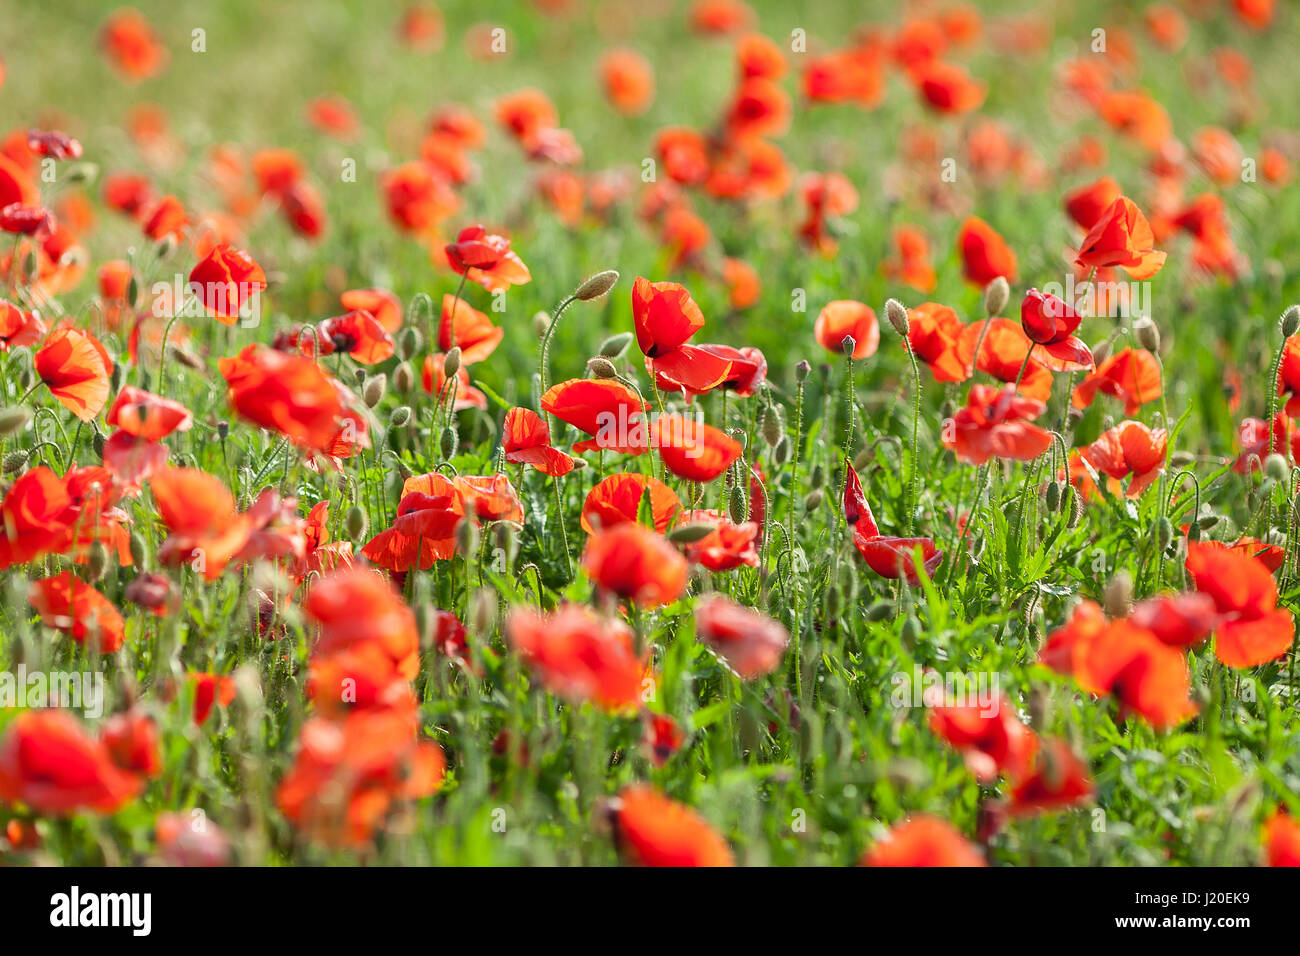 Poppy farming, nature, agriculture concept - industrial farming of poppy flowers - close-up on flowers and stems - Stock Image